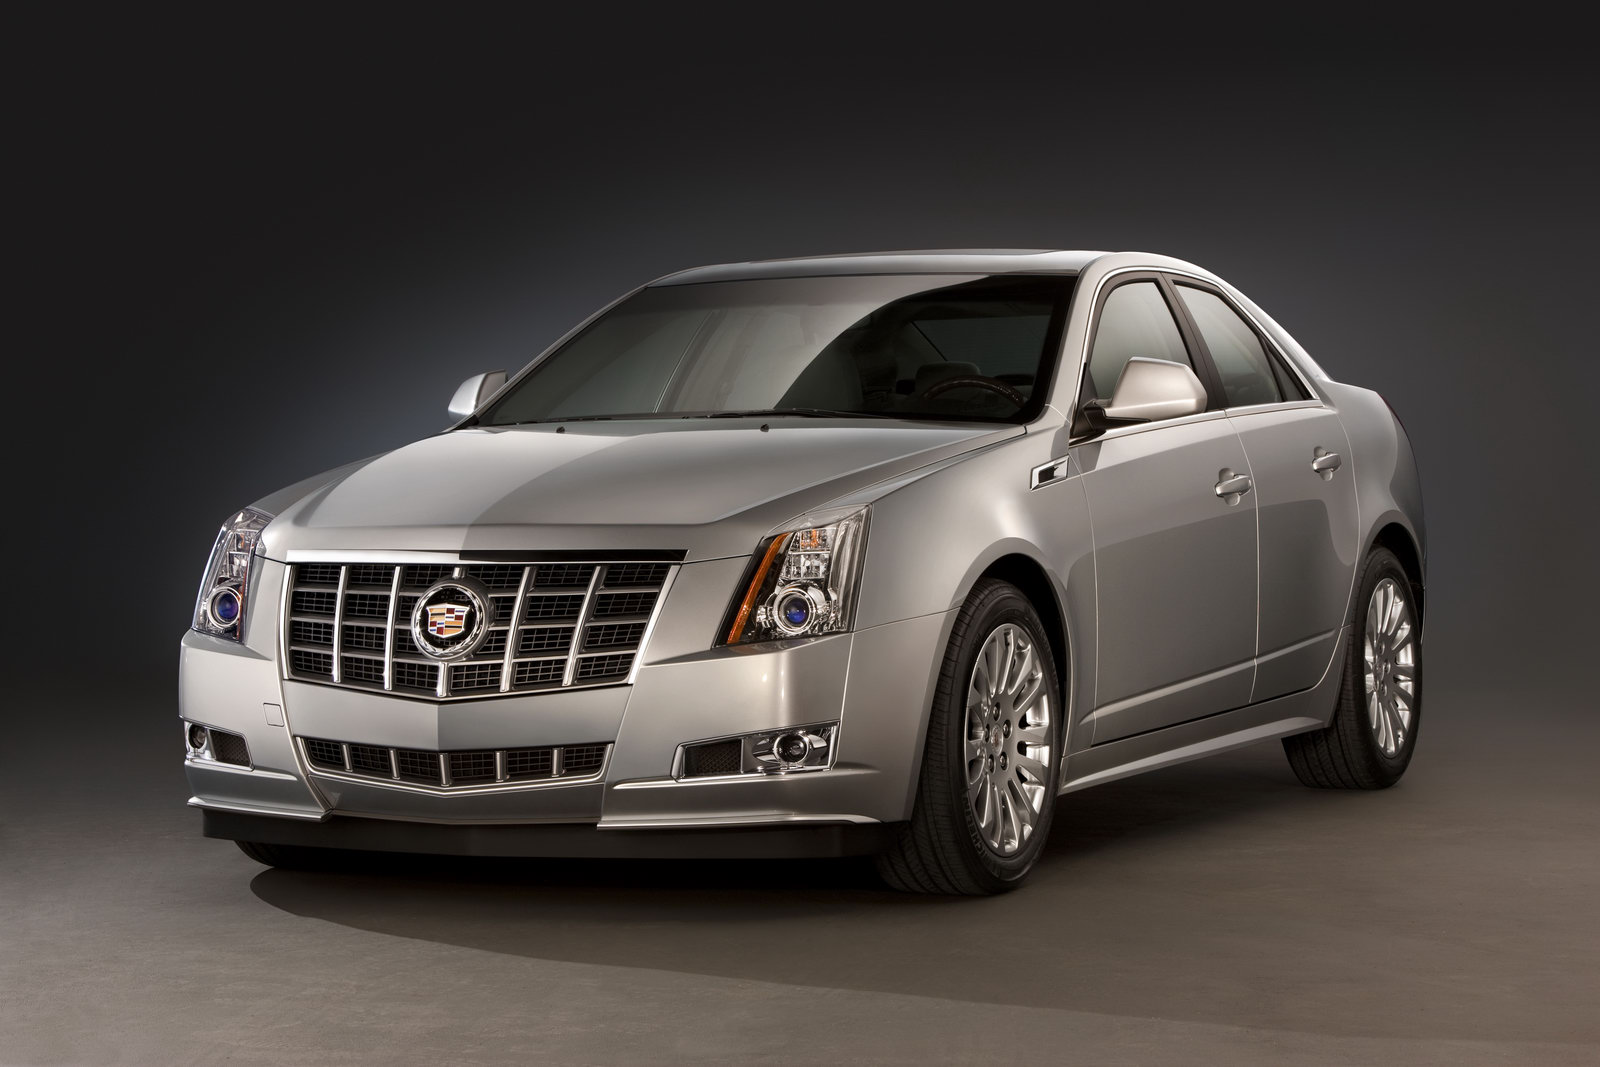 2012 cadillac cts sedan with new grille and more horsepower. Black Bedroom Furniture Sets. Home Design Ideas